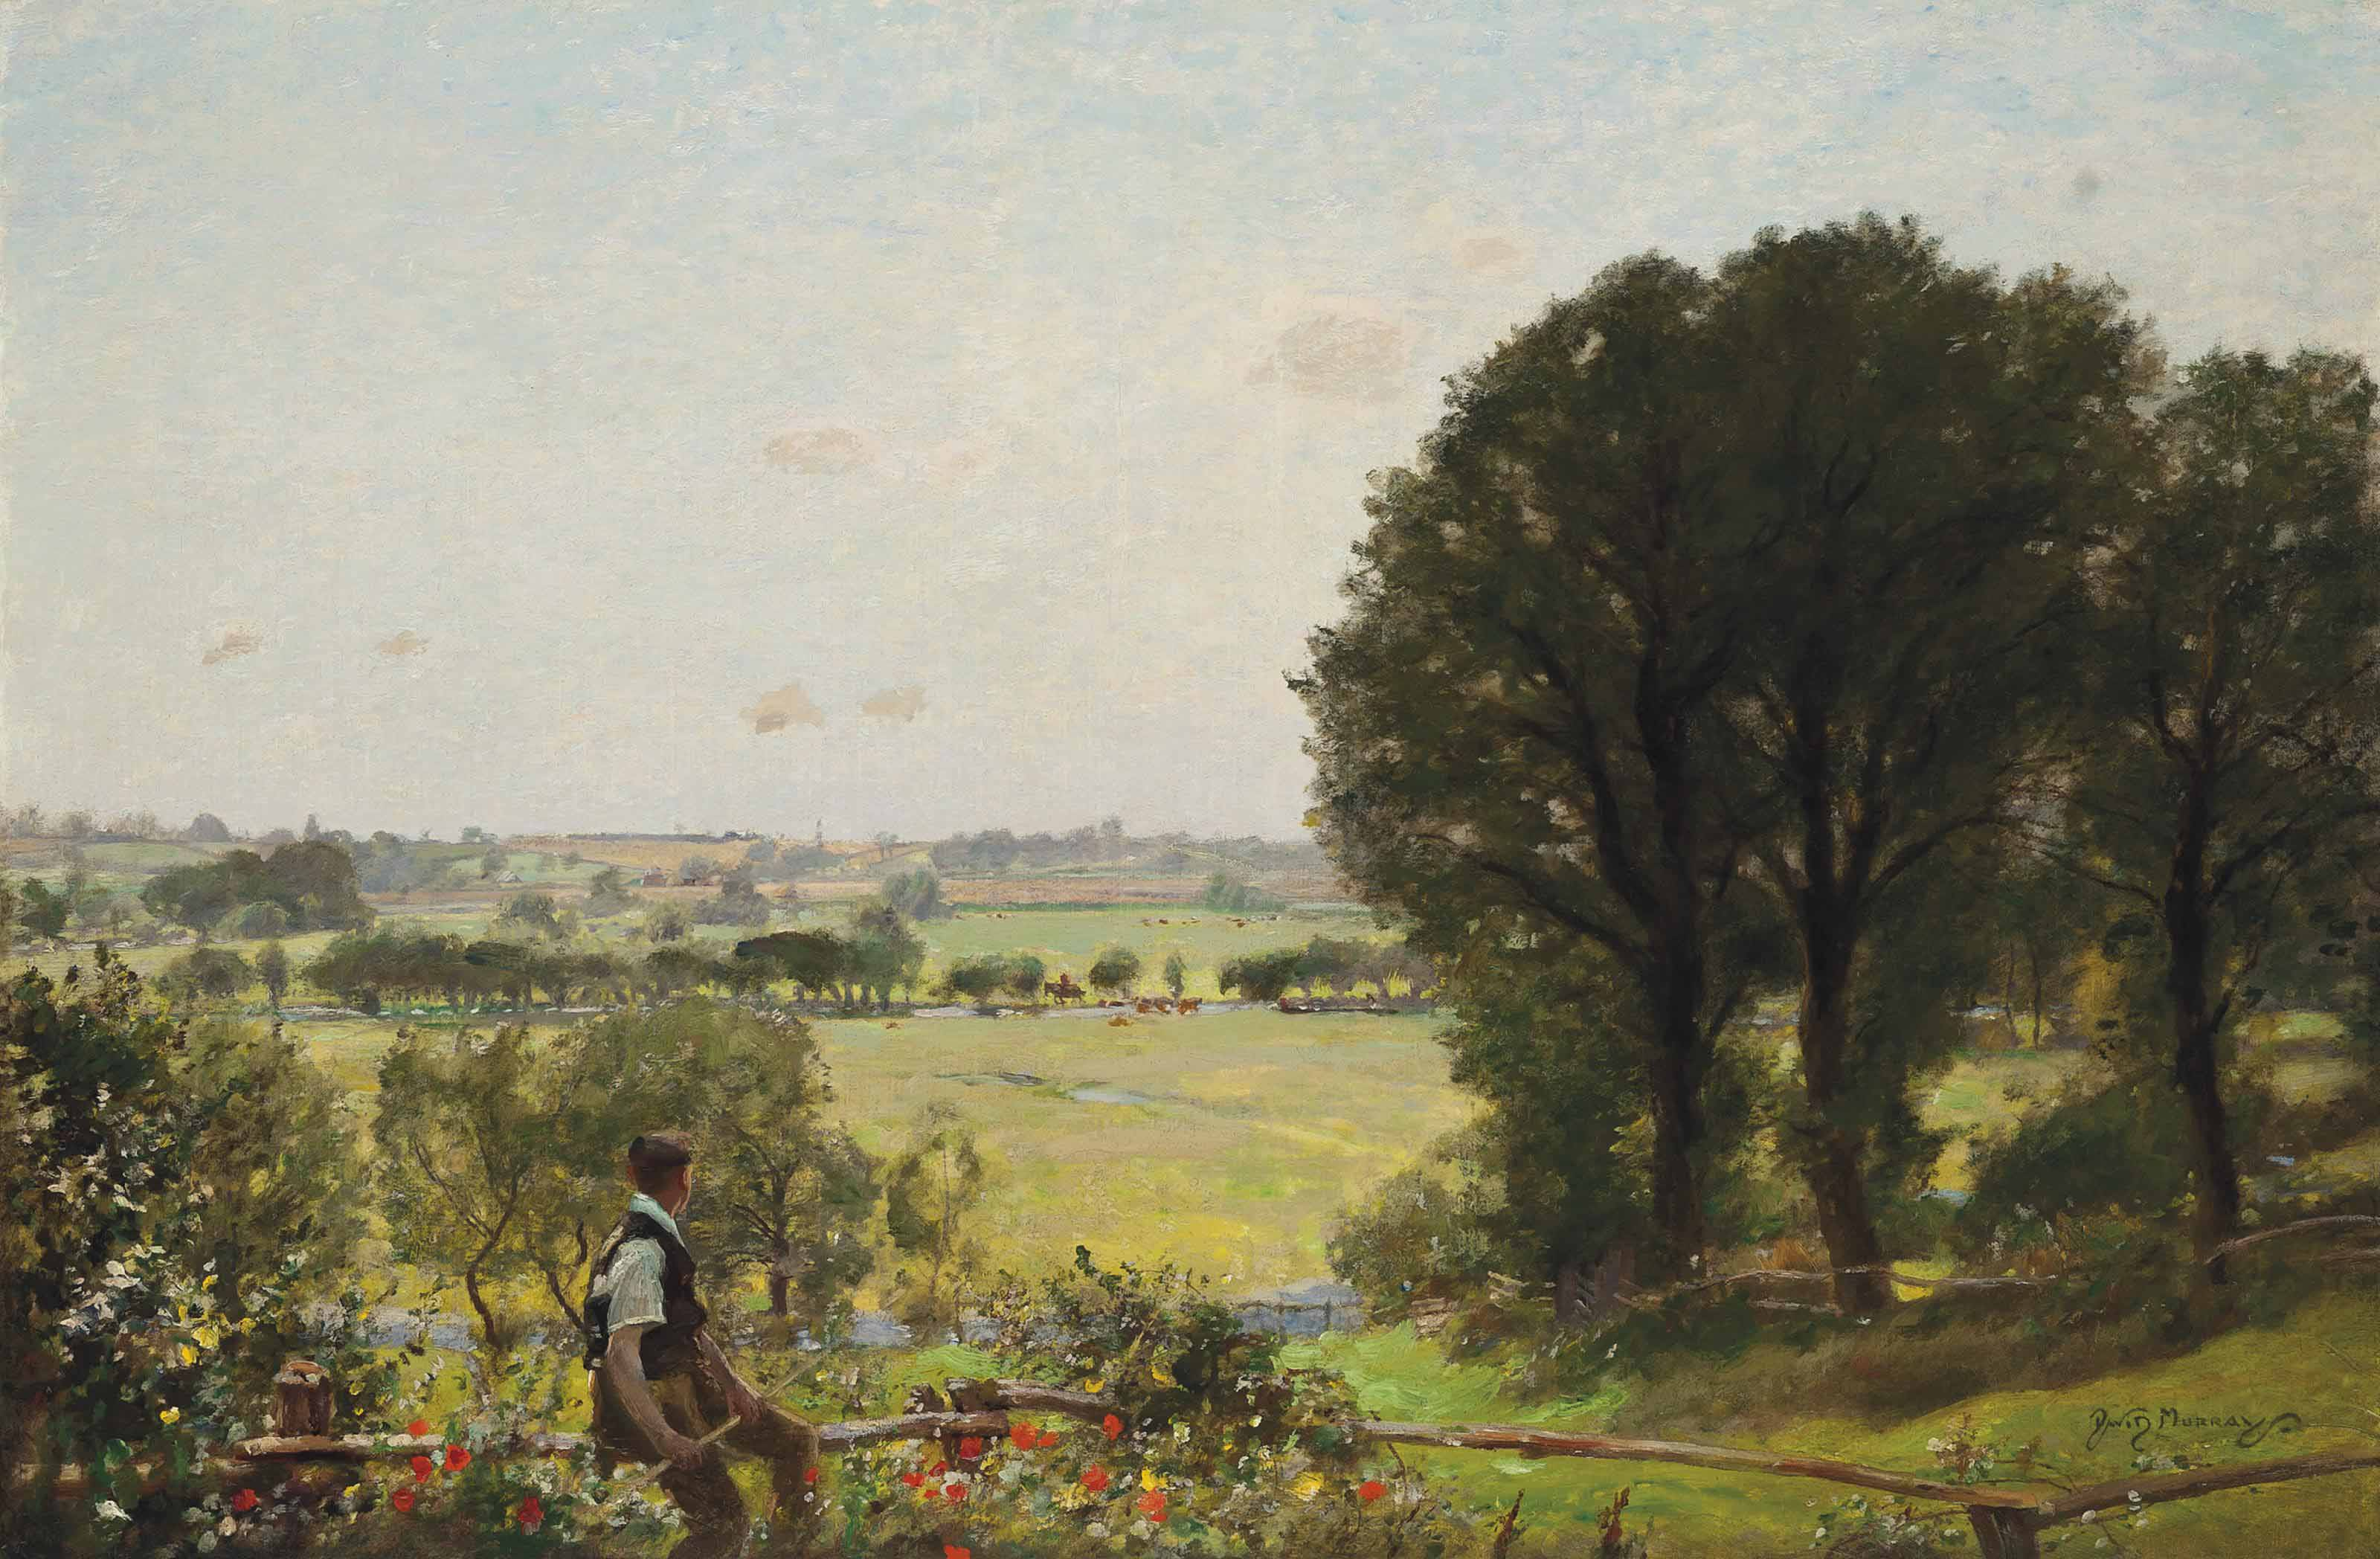 The heat of the day, Flatford